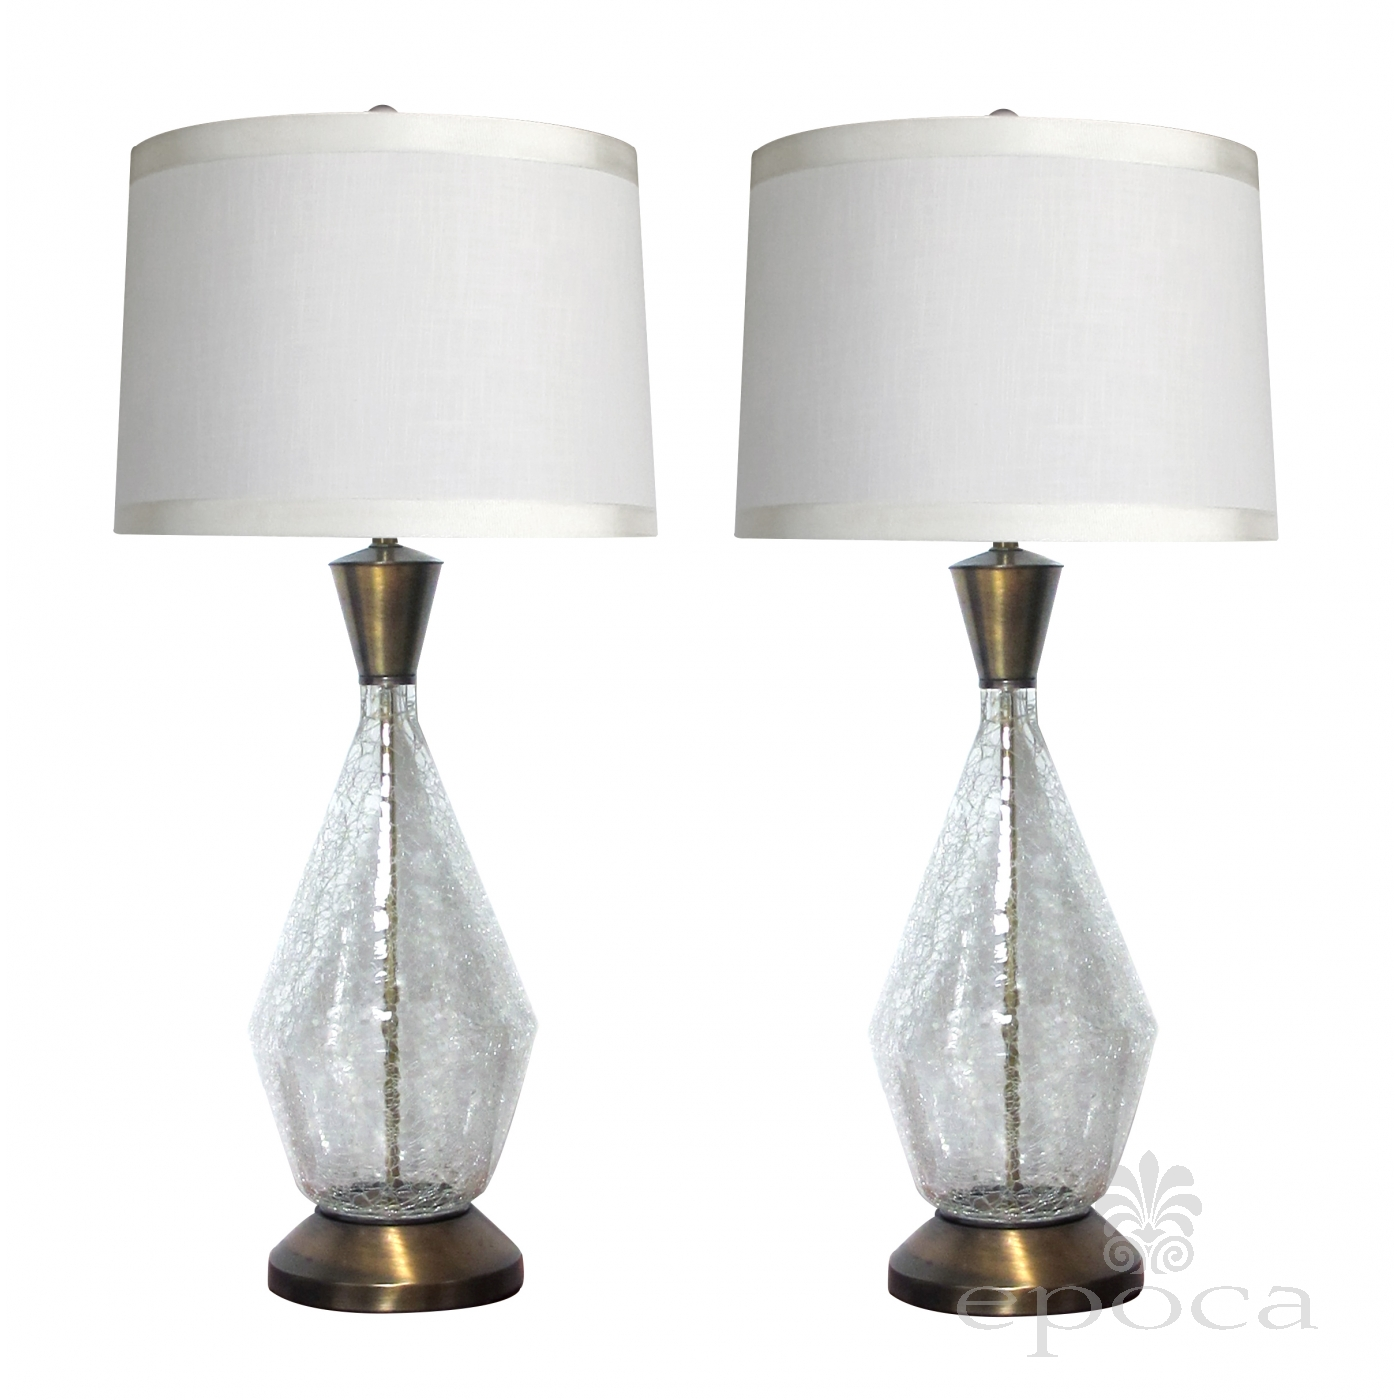 Glass Crackle Lamp Midcentury Modern Paul Hanson 1960s Clear Crackle Glass Lamps At